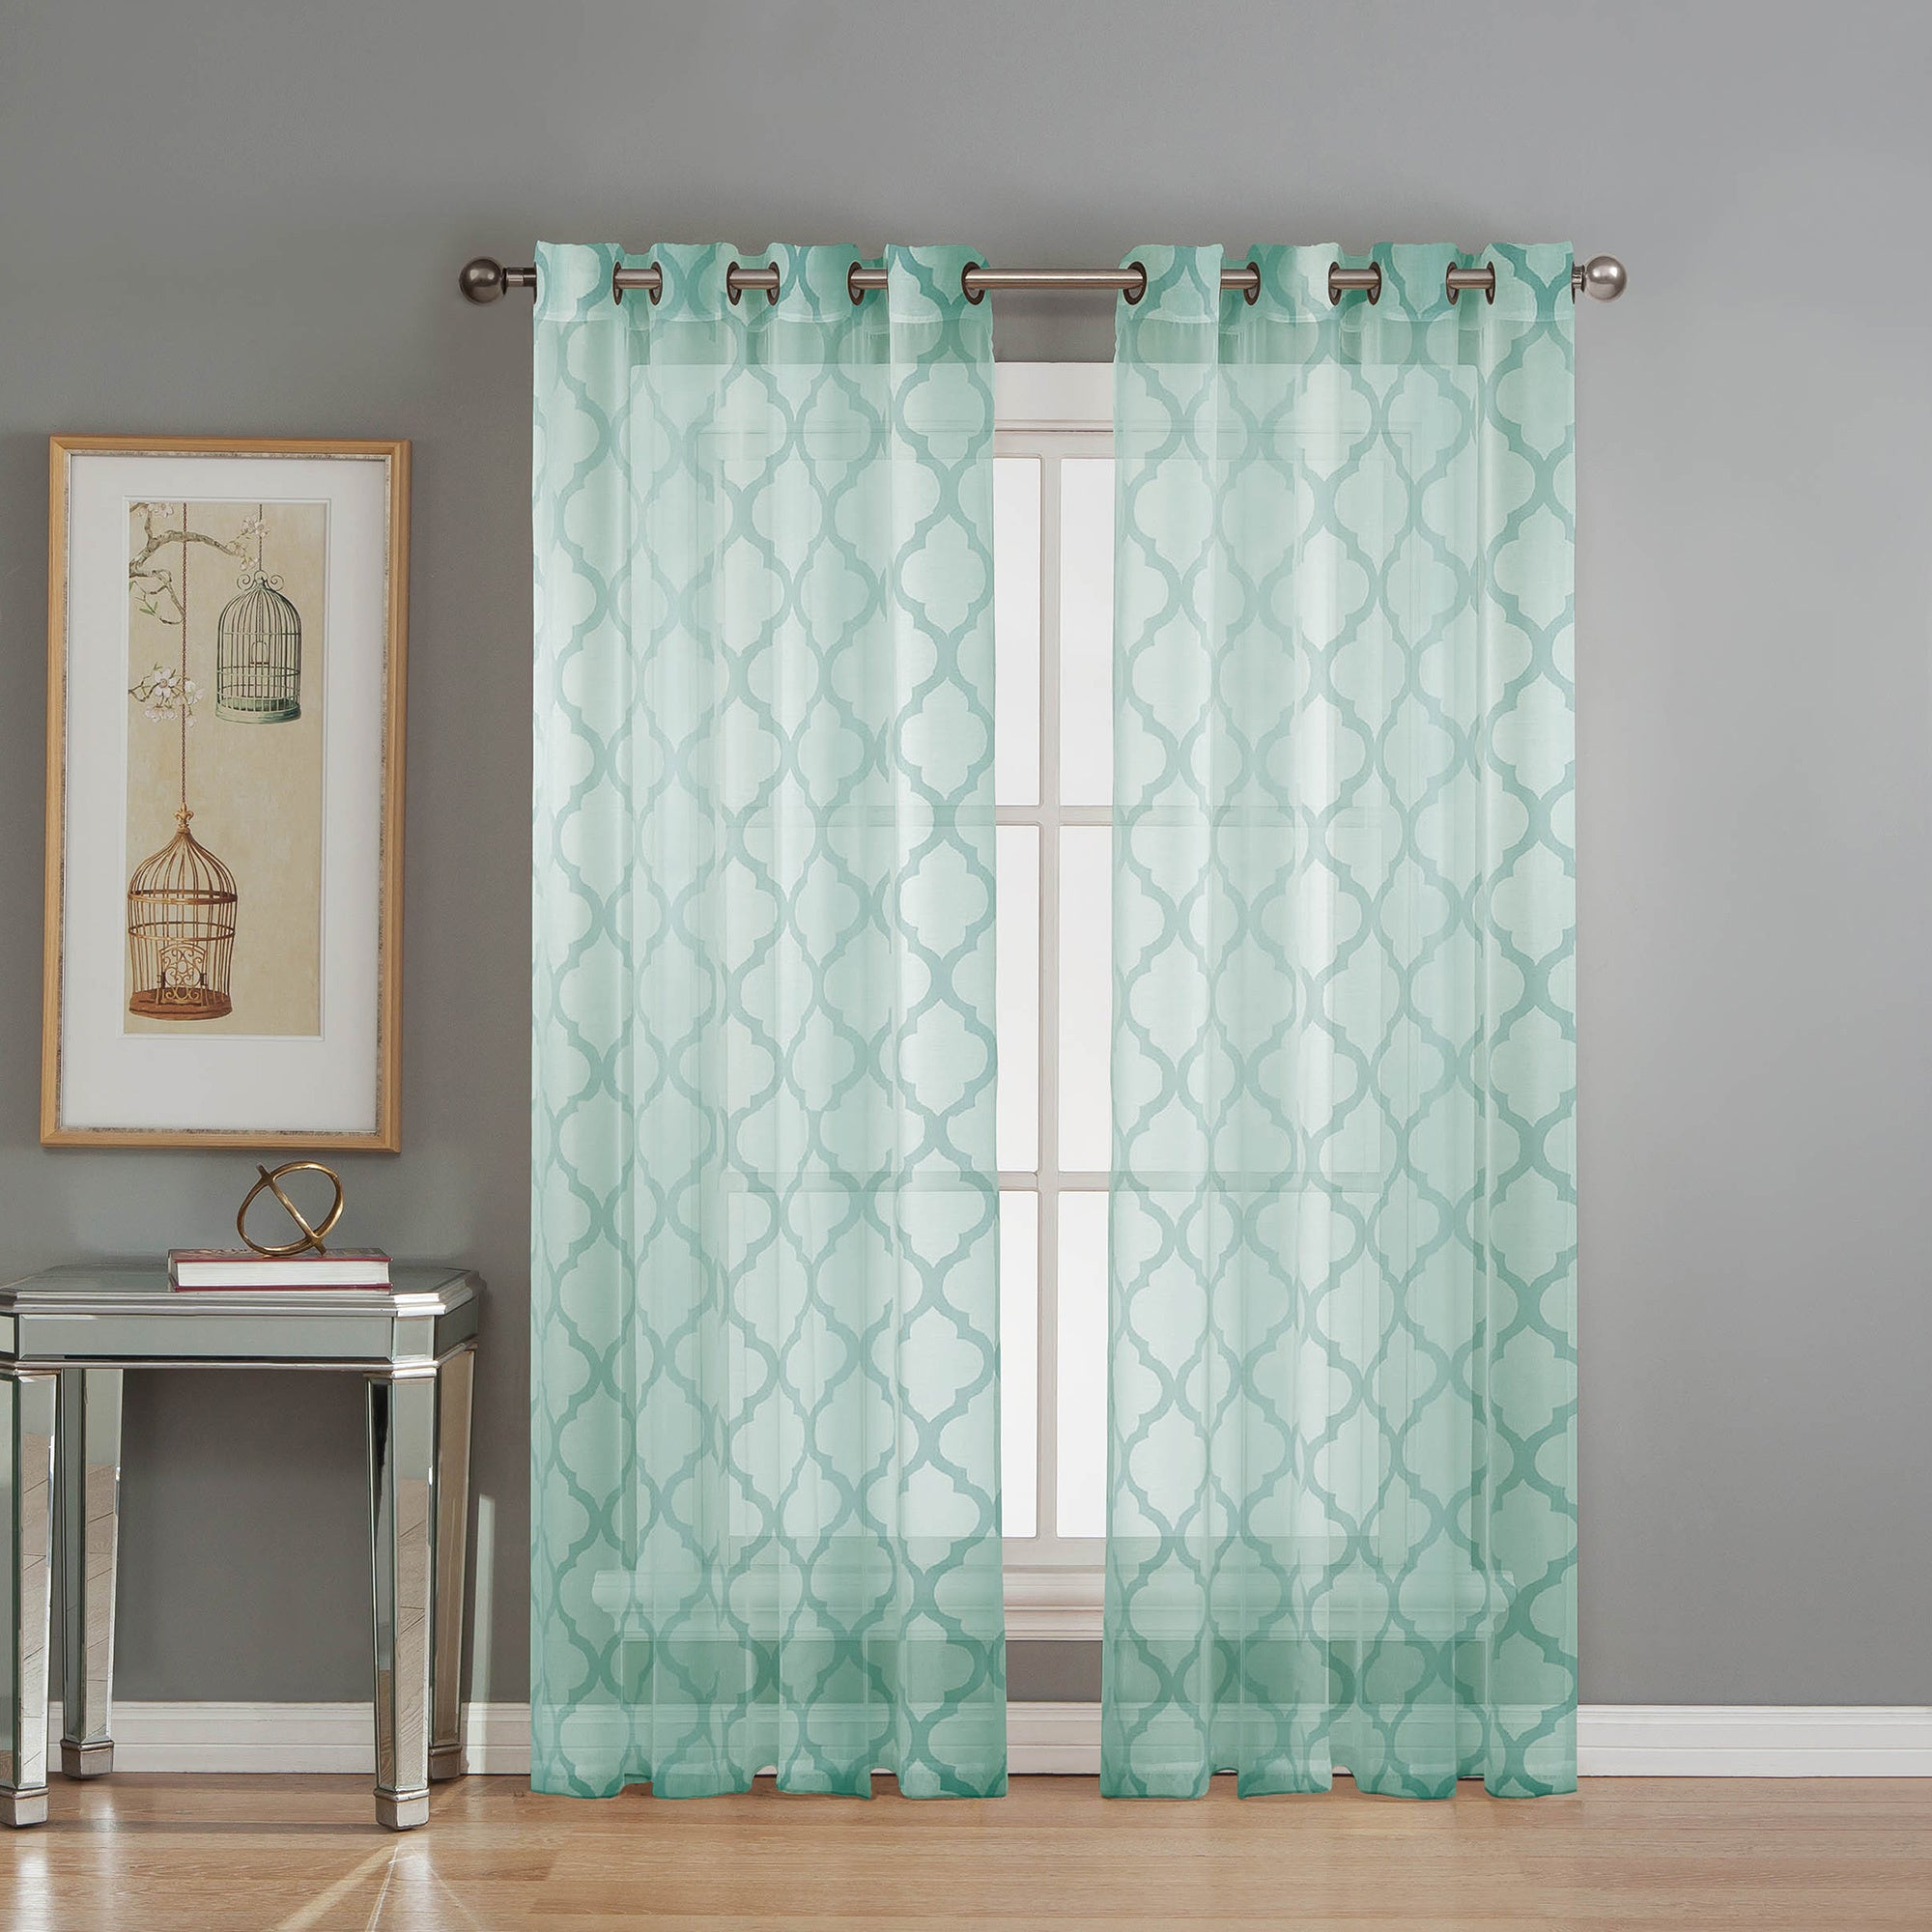 beaded blue eyelet curtains sheer with window valance pelmet teal panel blackout swags itm blockout curtain drapes swag